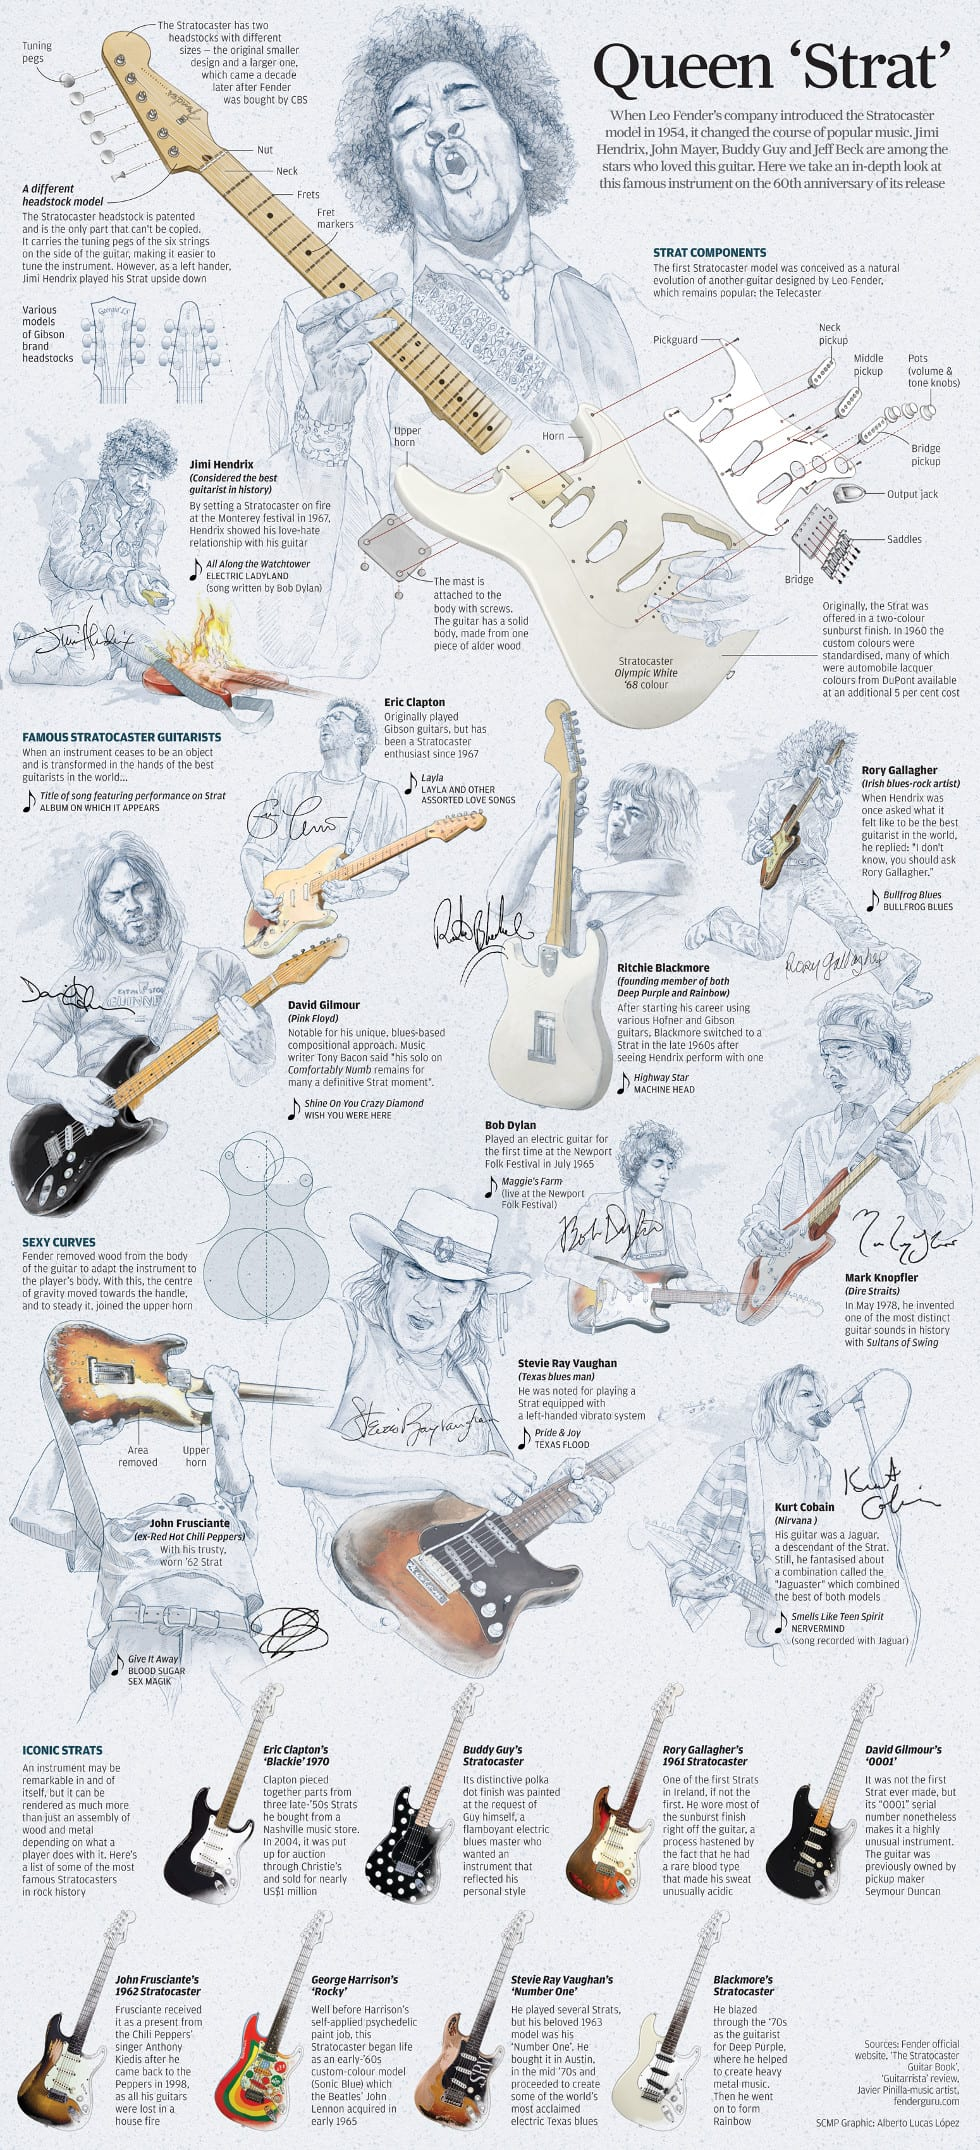 stratocaster_980px